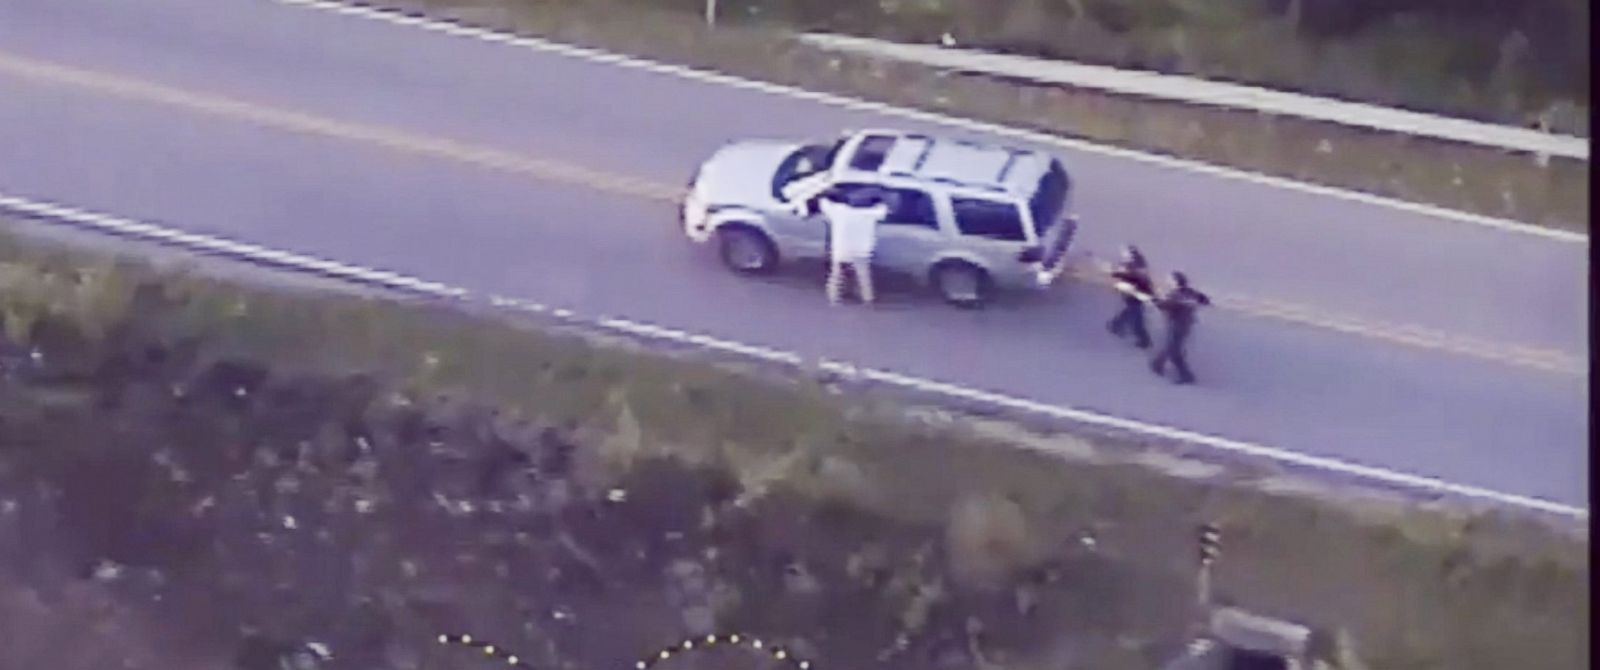 PHOTO: A frame grab from video released by the Tulsa, Oklahoma, Police Department and acquired on Sept. 20, 2016, reportedly shows Terrence Crutcher walking with his hands in the air as he is confronted by police in Tulsa, Oklahoma, on Sept. 16, 2016.